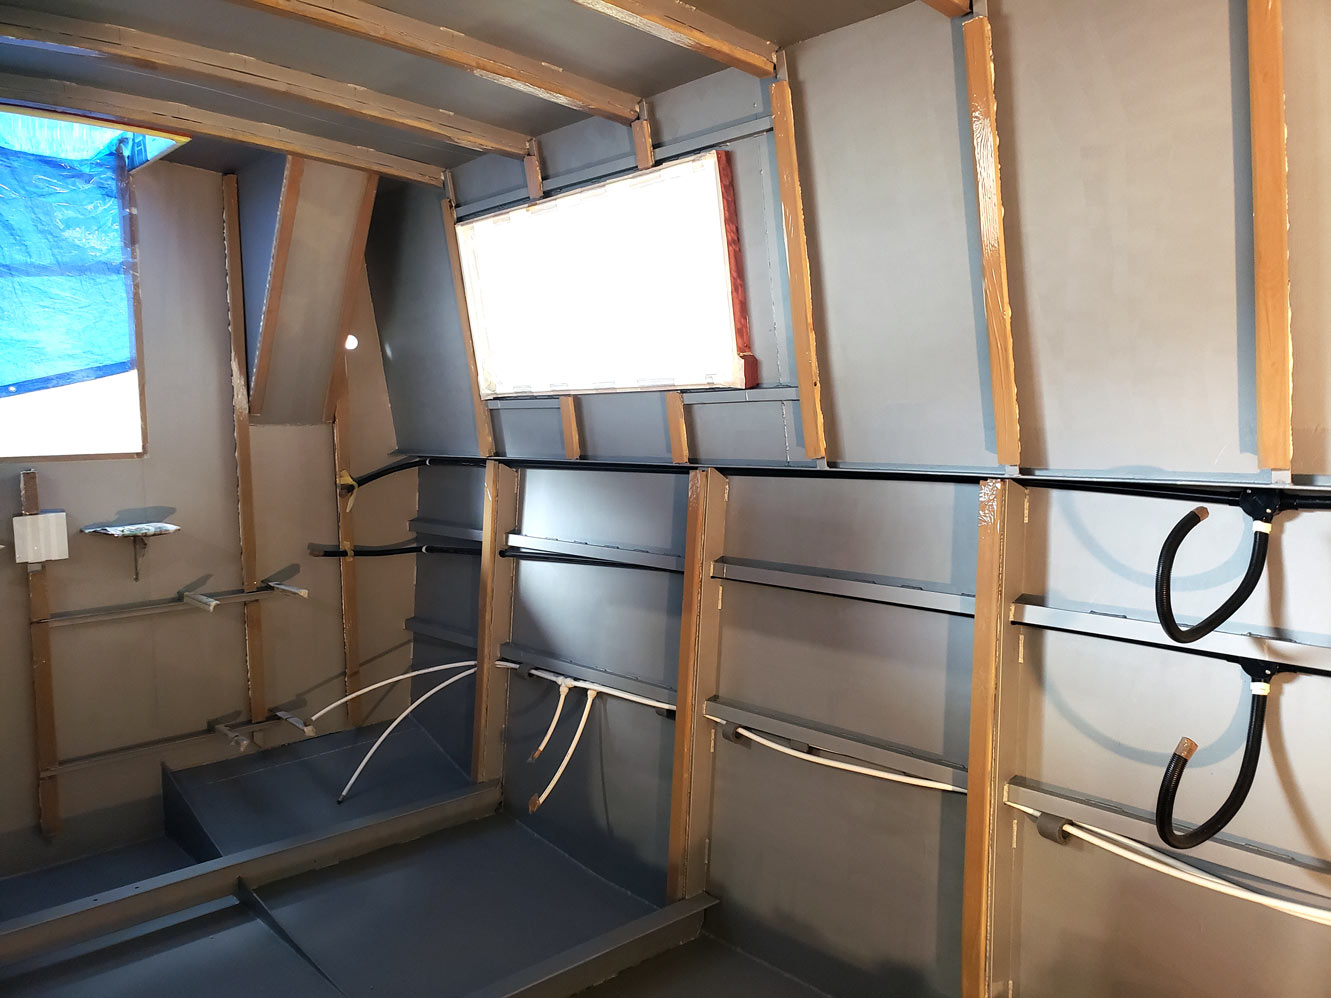 Photo of narrow boat hull interior before insulation applied